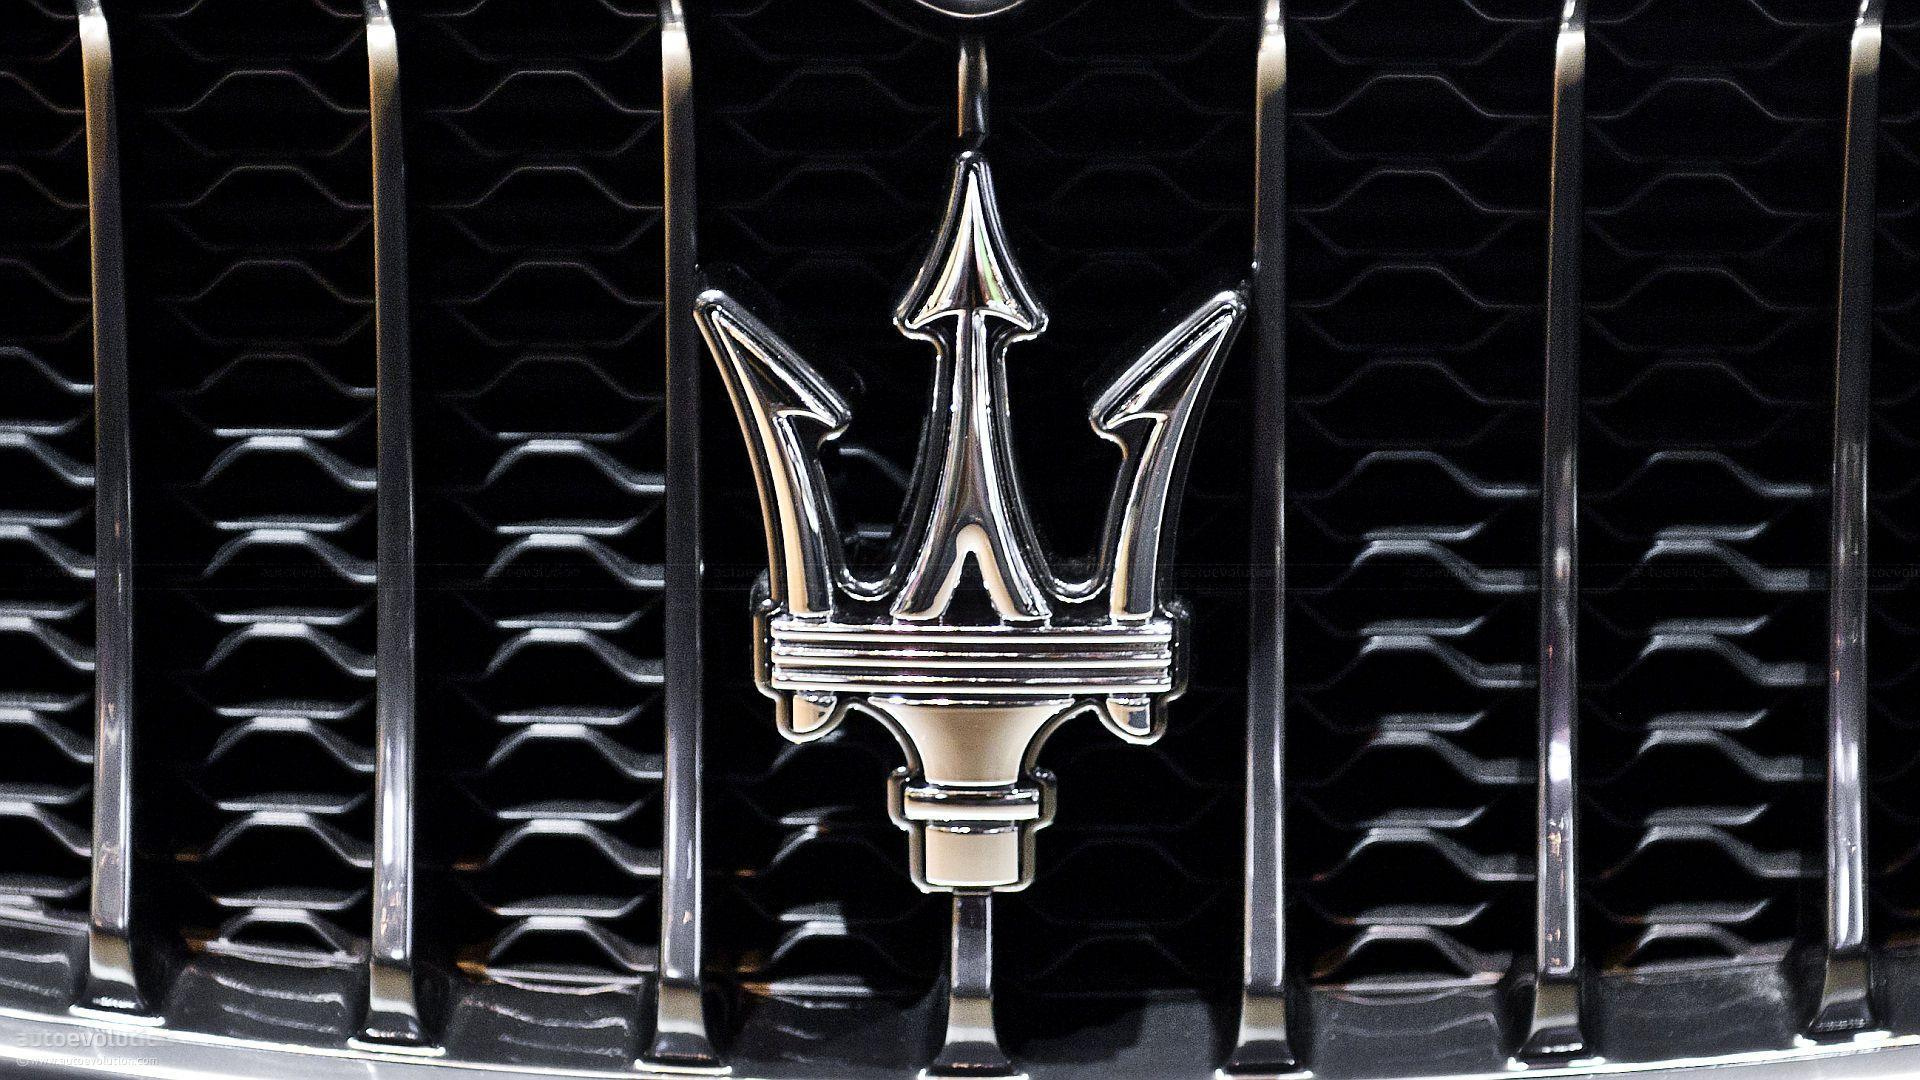 maserati logo wallpapers pictures